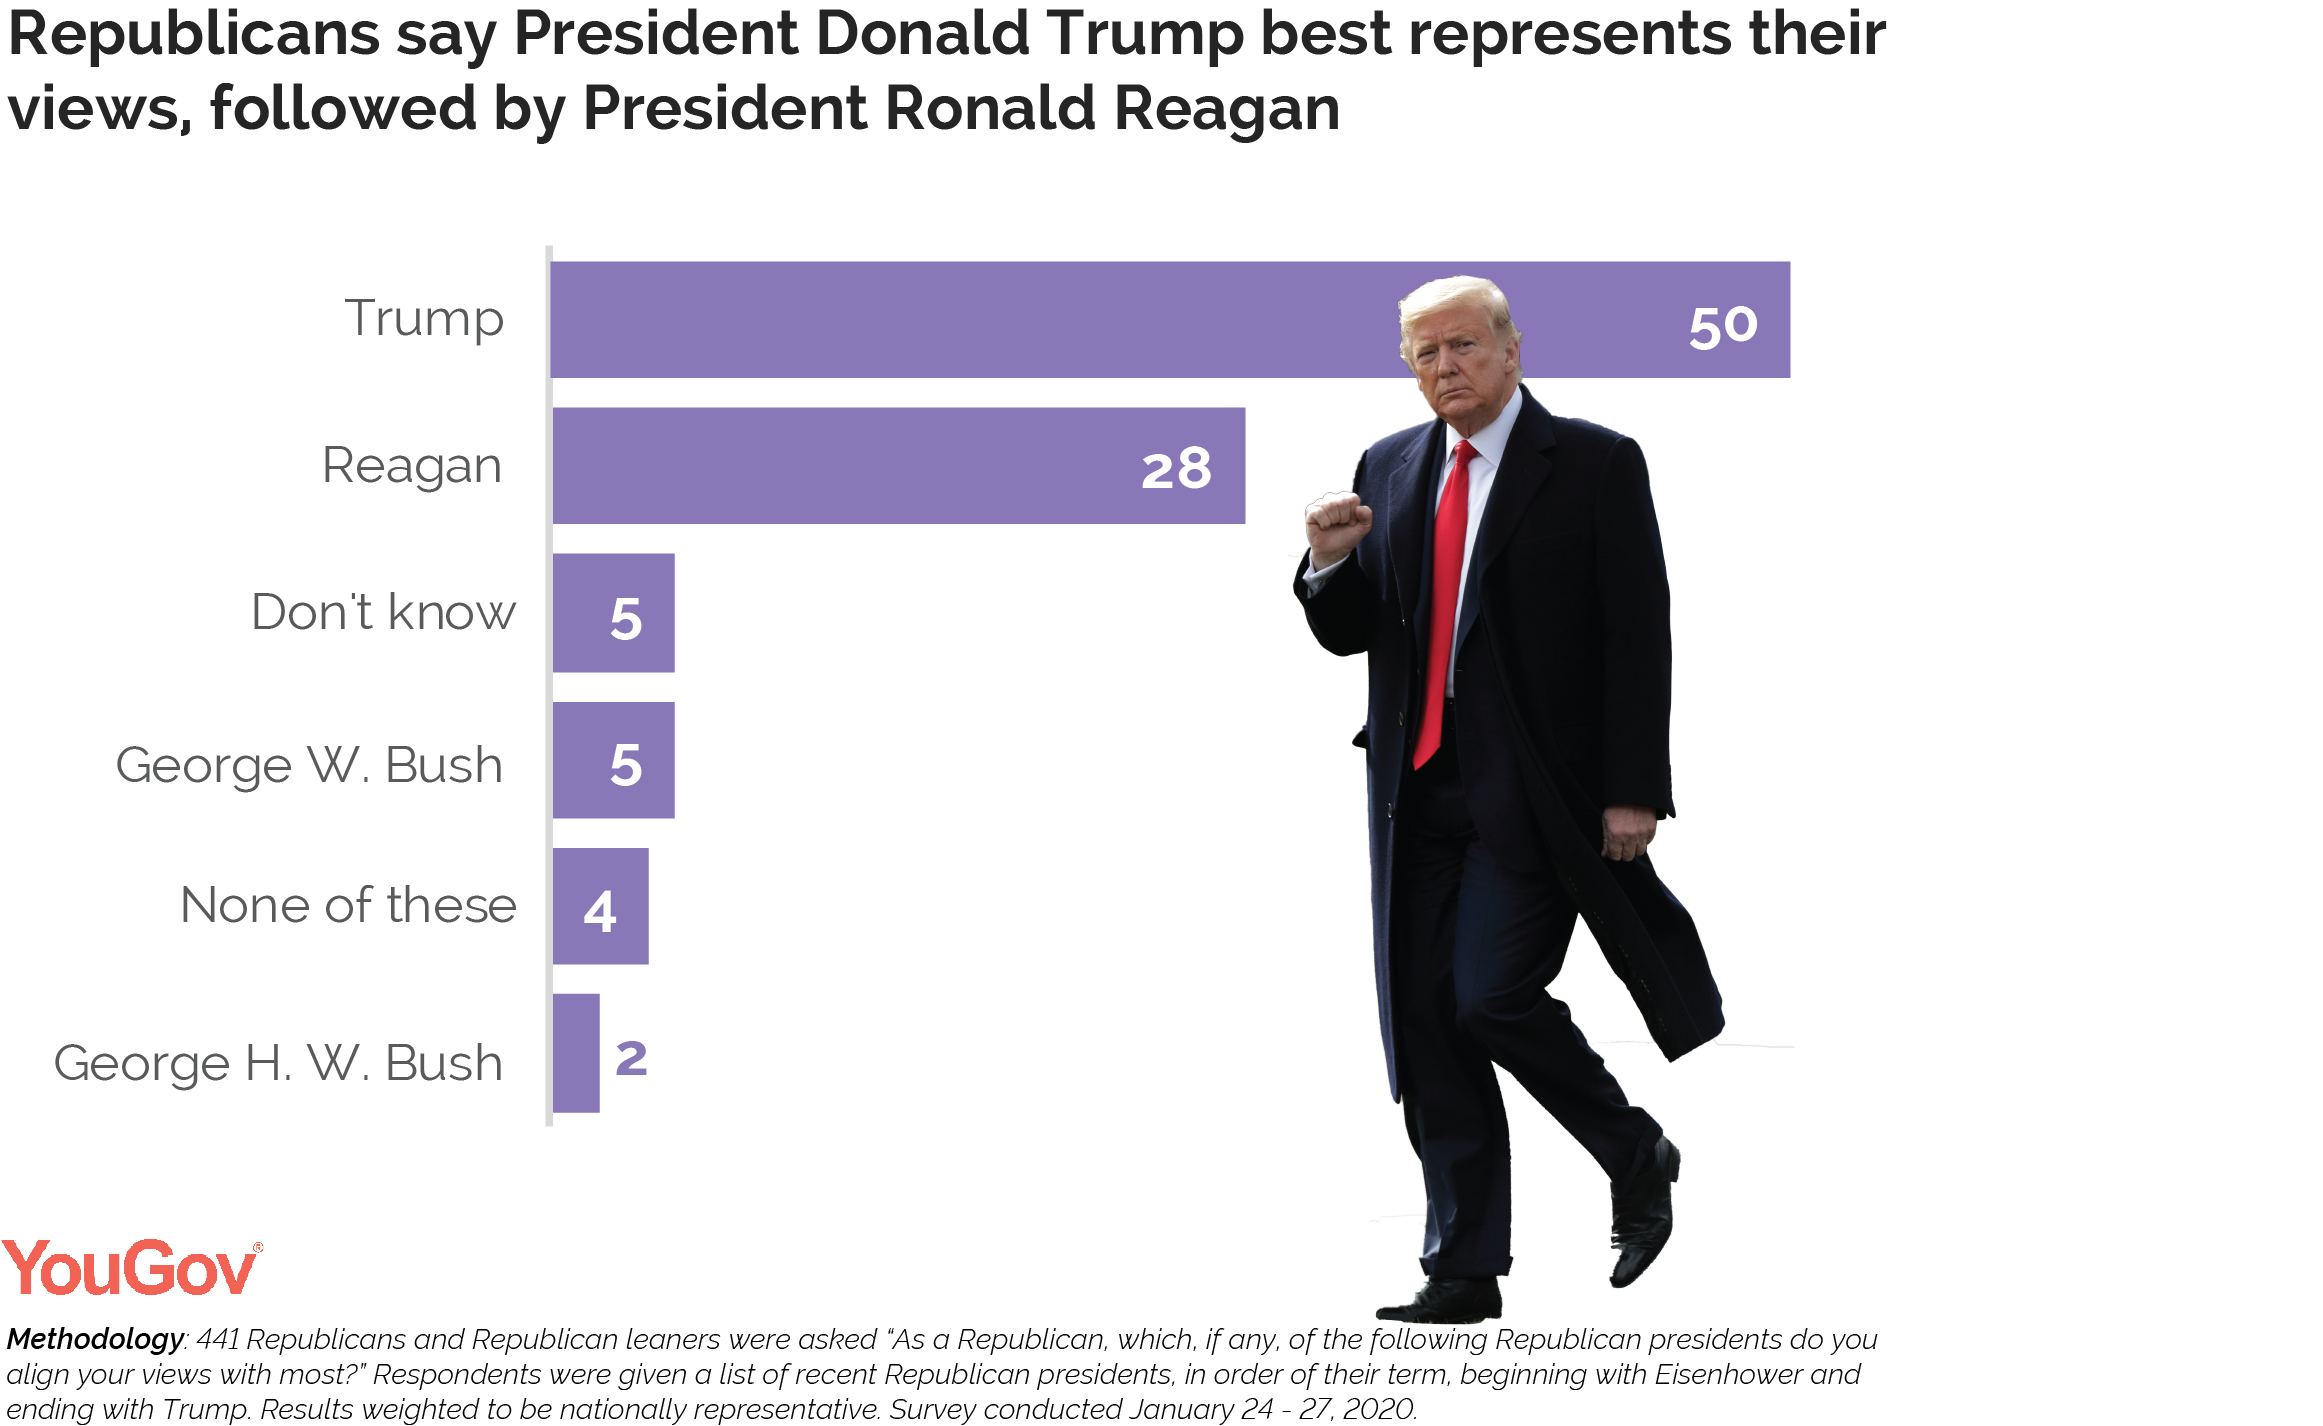 Republicans say President Donald Trump best represents their views, followed President Ronald Reagan